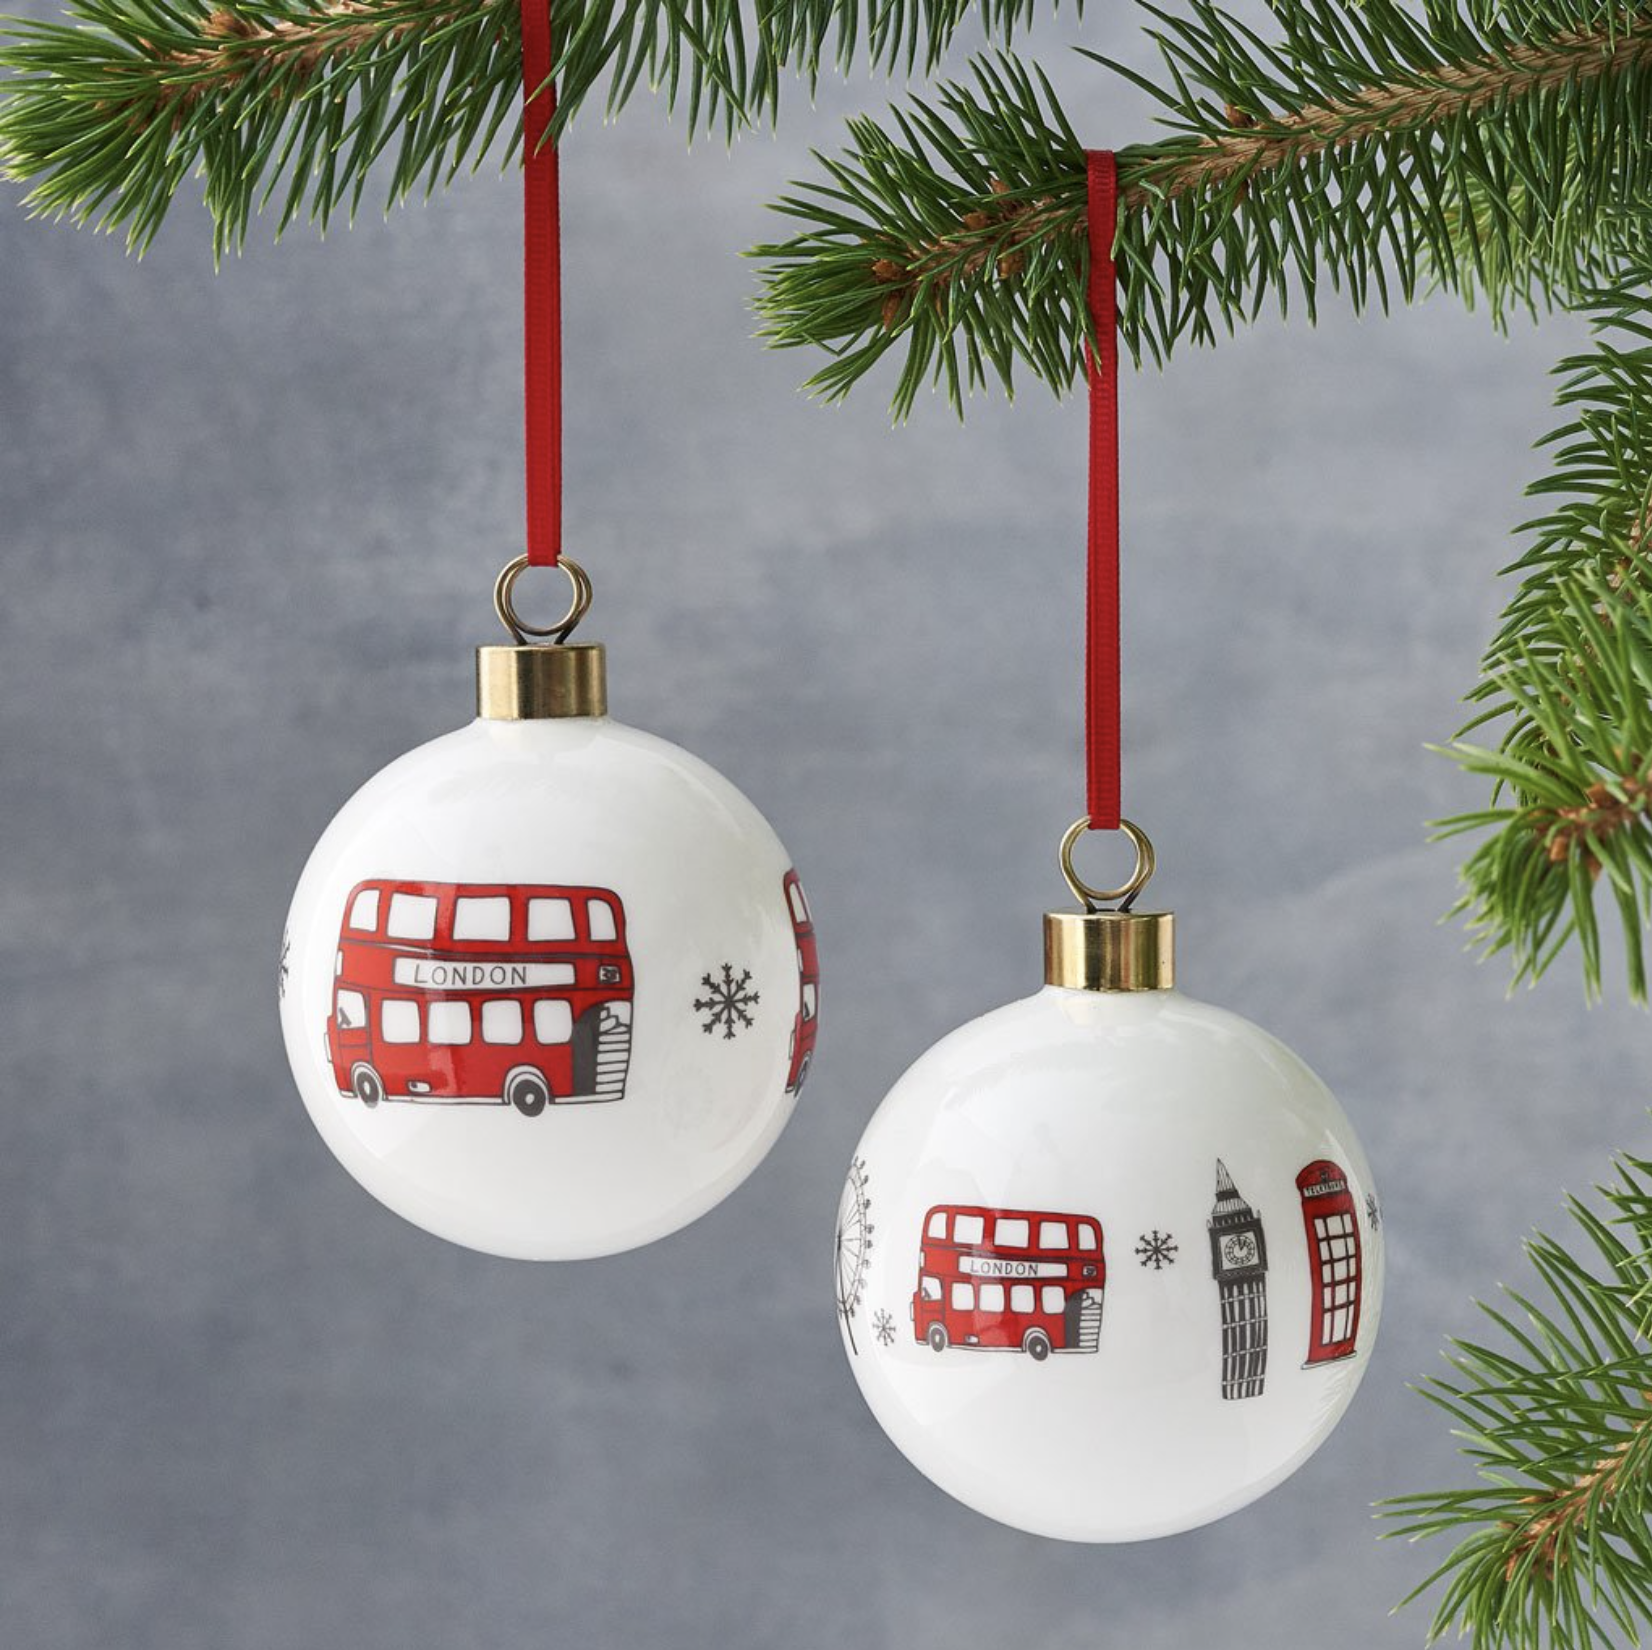 London china baubles, 2 for £29 at Victoria Eggs